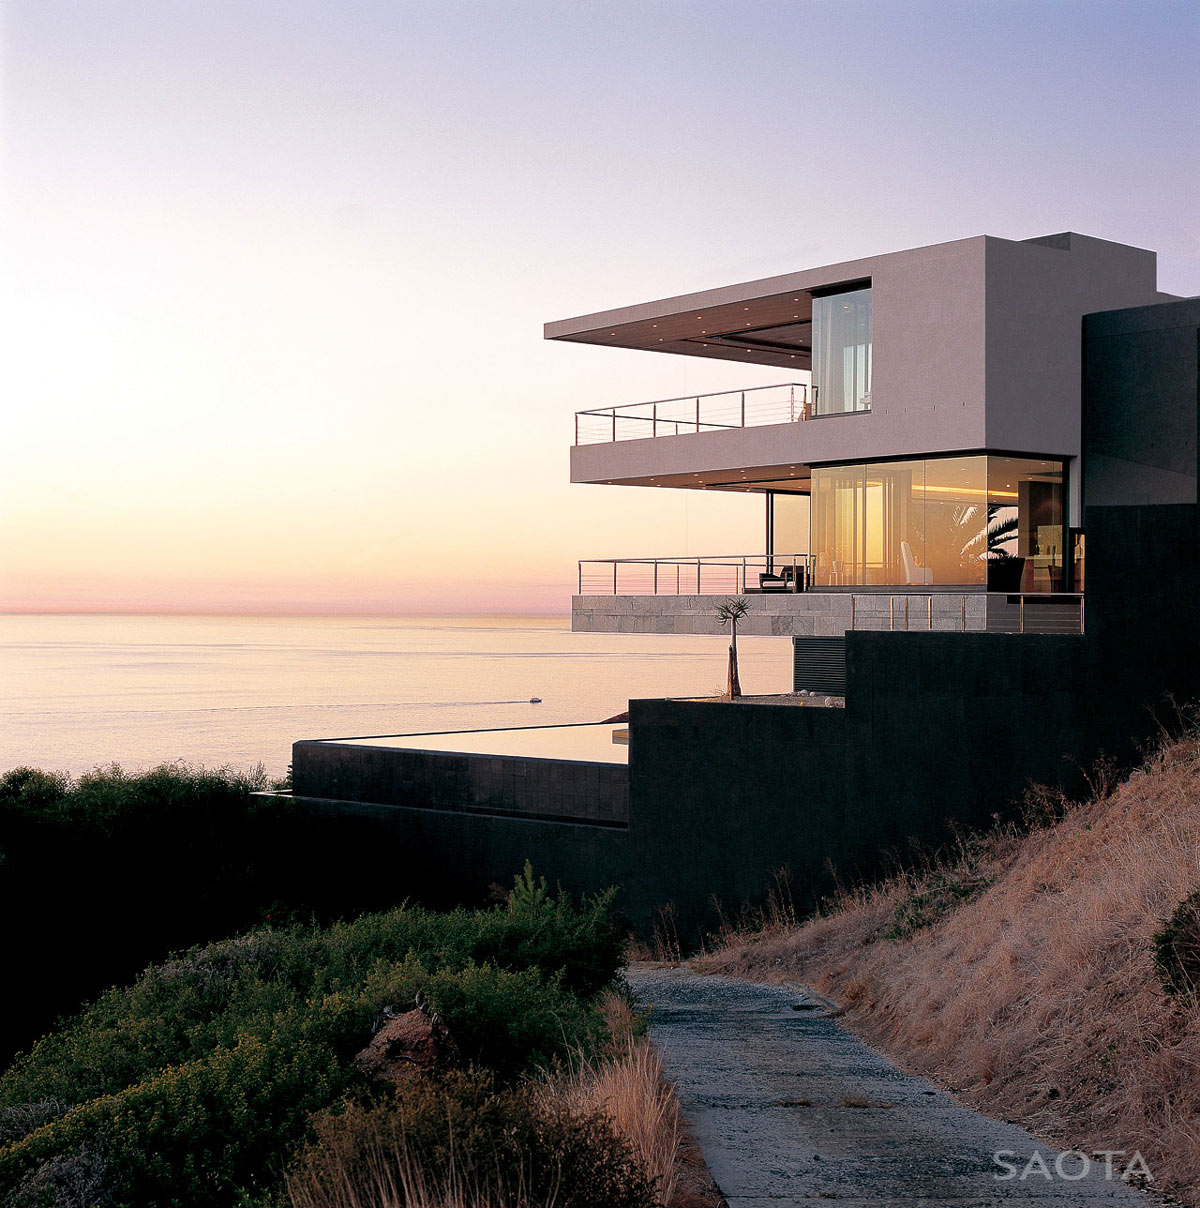 St Leon 10 in Cape Town, South Africa by SAOTA and Antoni Associates